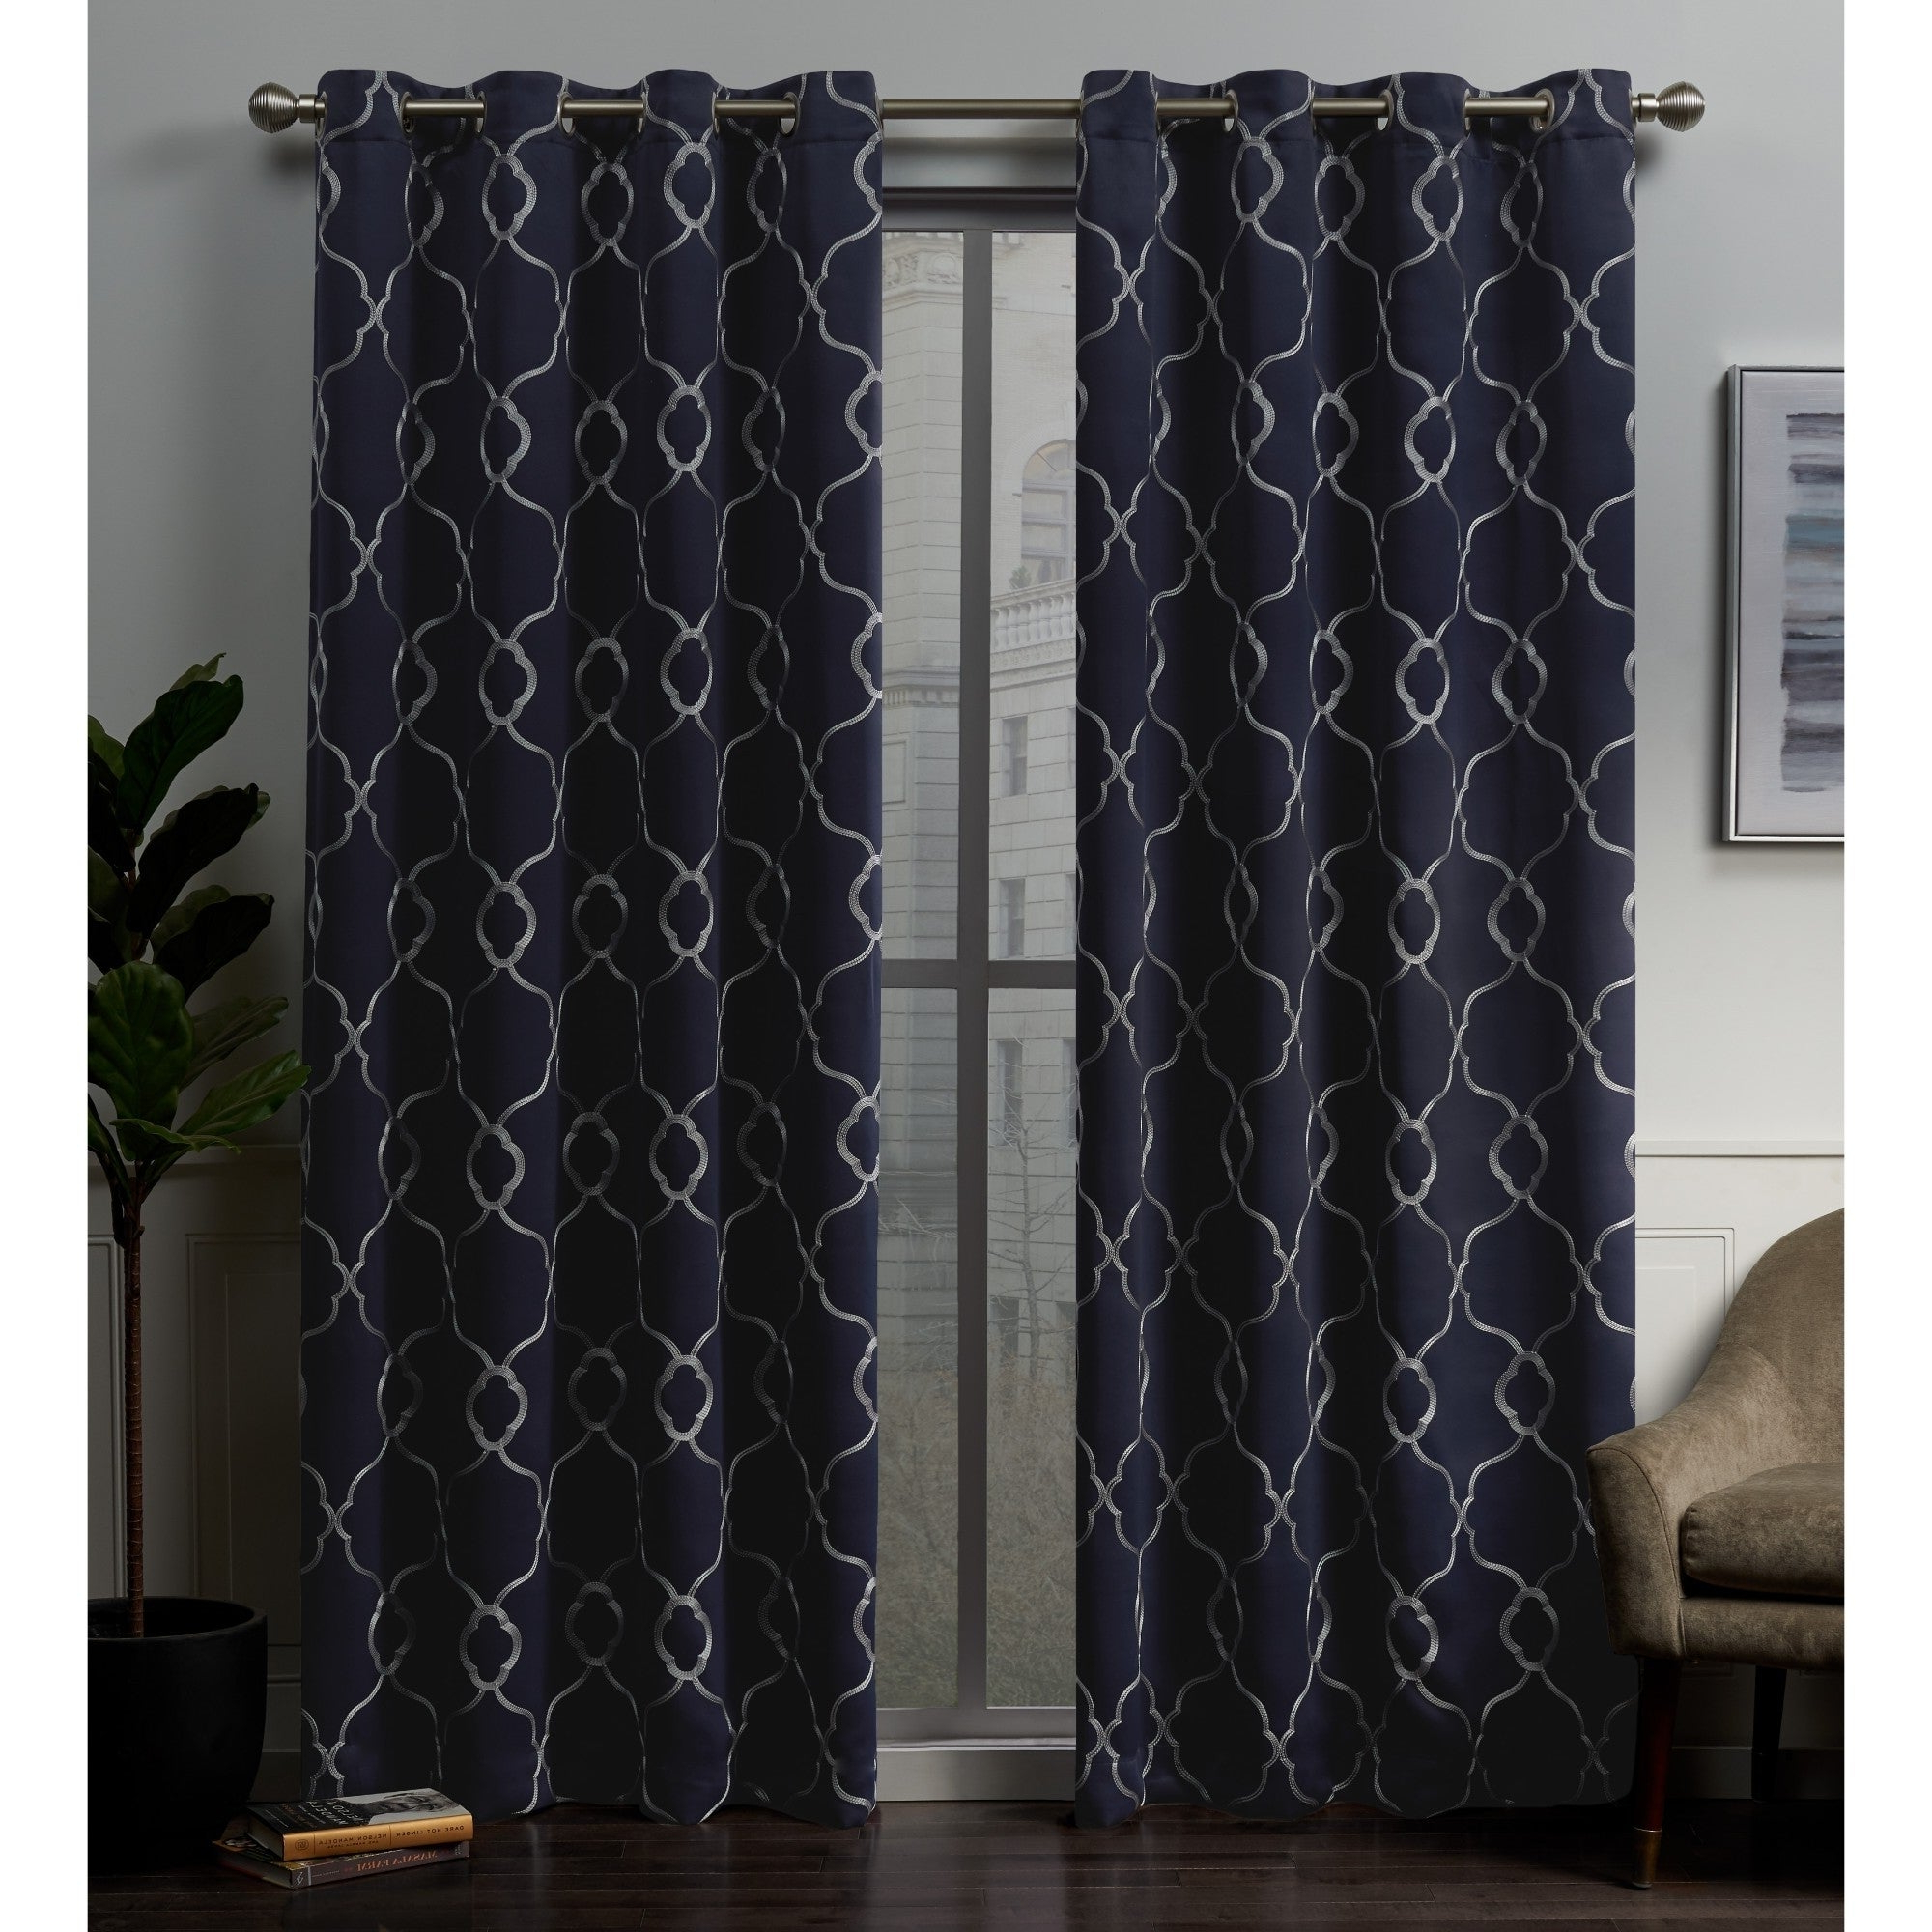 Well Known Ati Home Belmont Woven Blackout Grommet Top Curtain Panel Pair Within Sateen Woven Blackout Curtain Panel Pairs With Pinch Pleat Top (View 8 of 20)